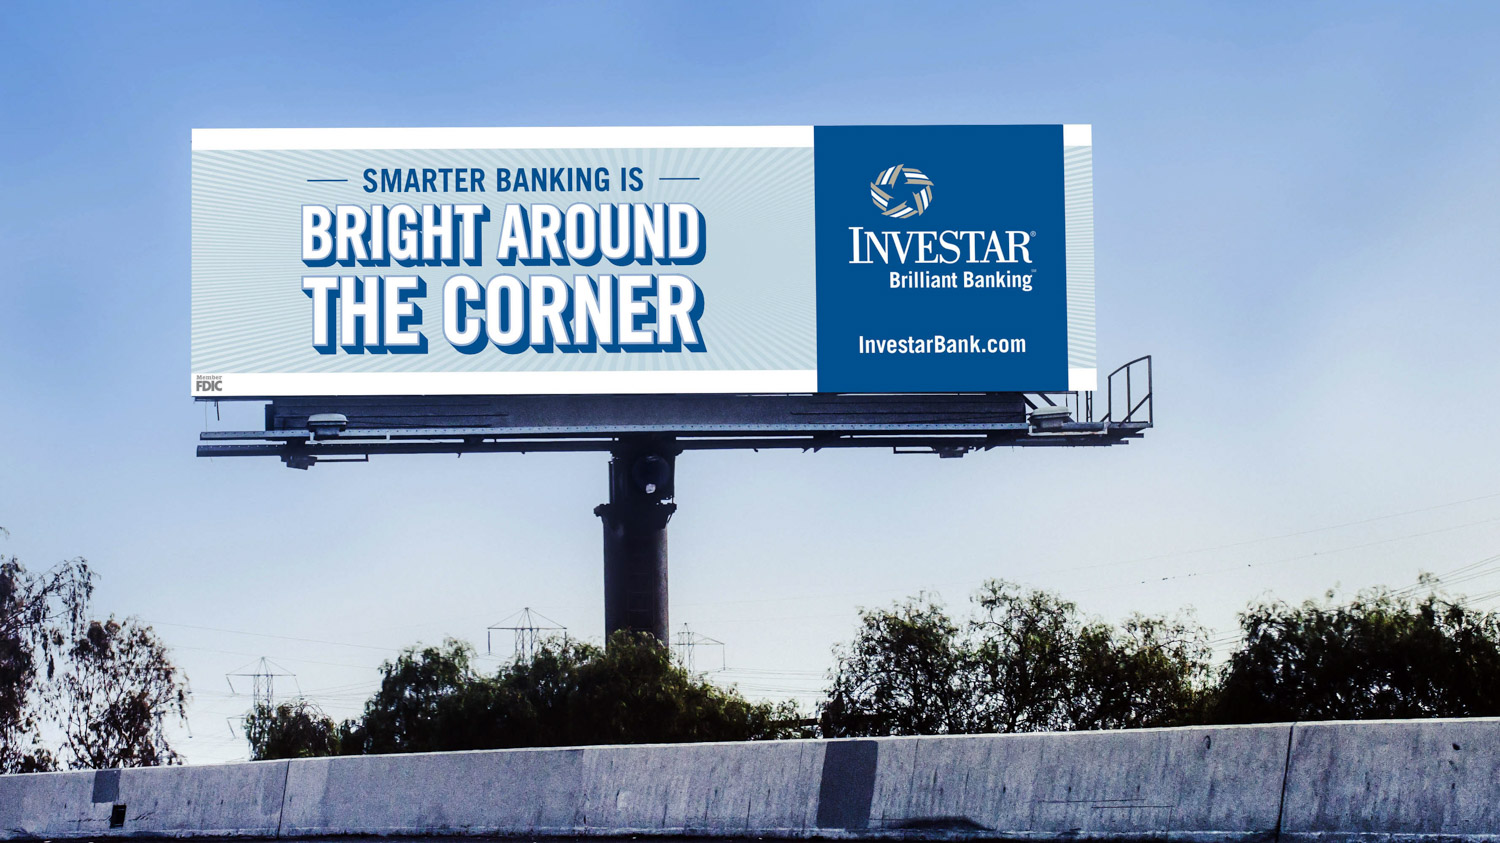 Investar | 2016 Billboard: Bright Around the Corner Mockup